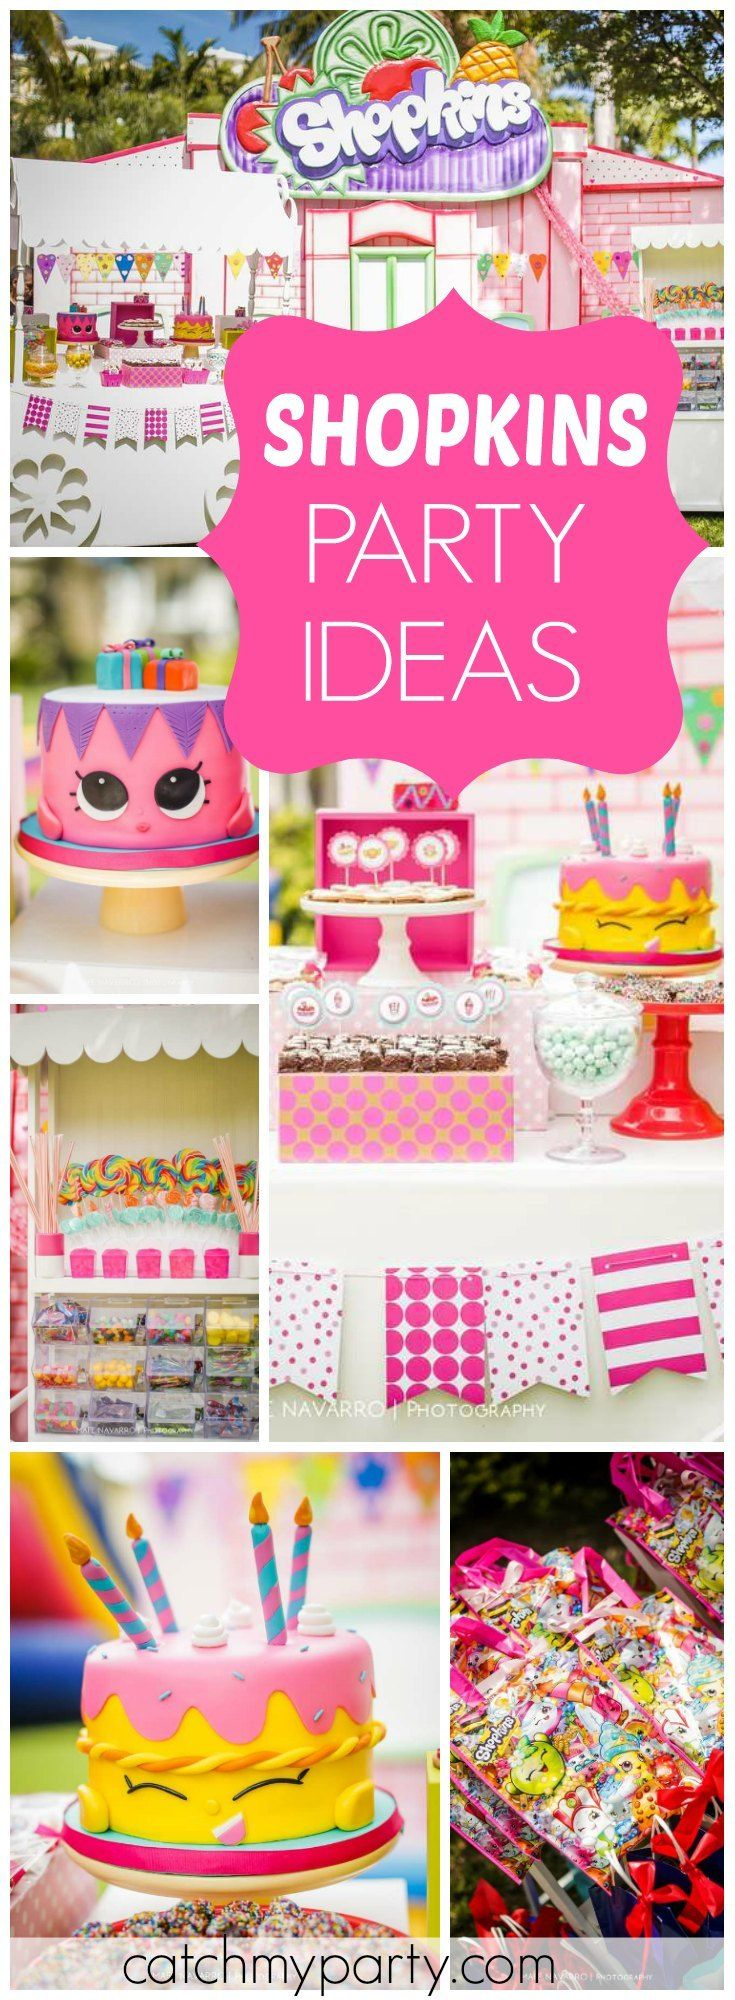 So many fantastic details at this Shopkins girl birthday party! See more party ideas at Catchmyparty.com!